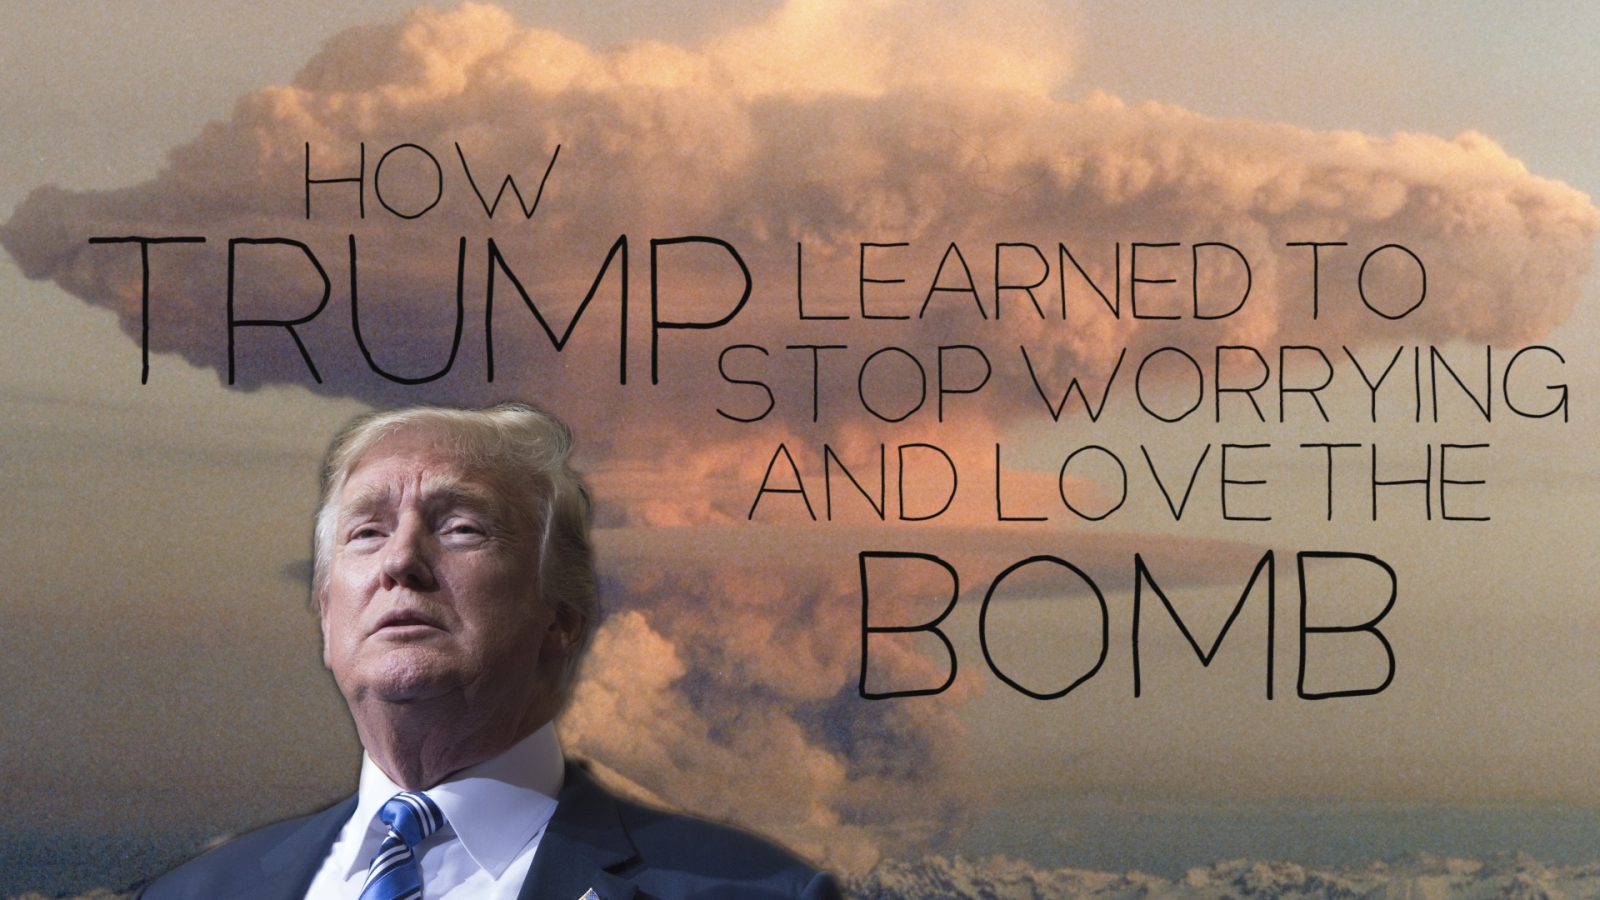 How Donald Trump learned to stop worrying and love the bomb